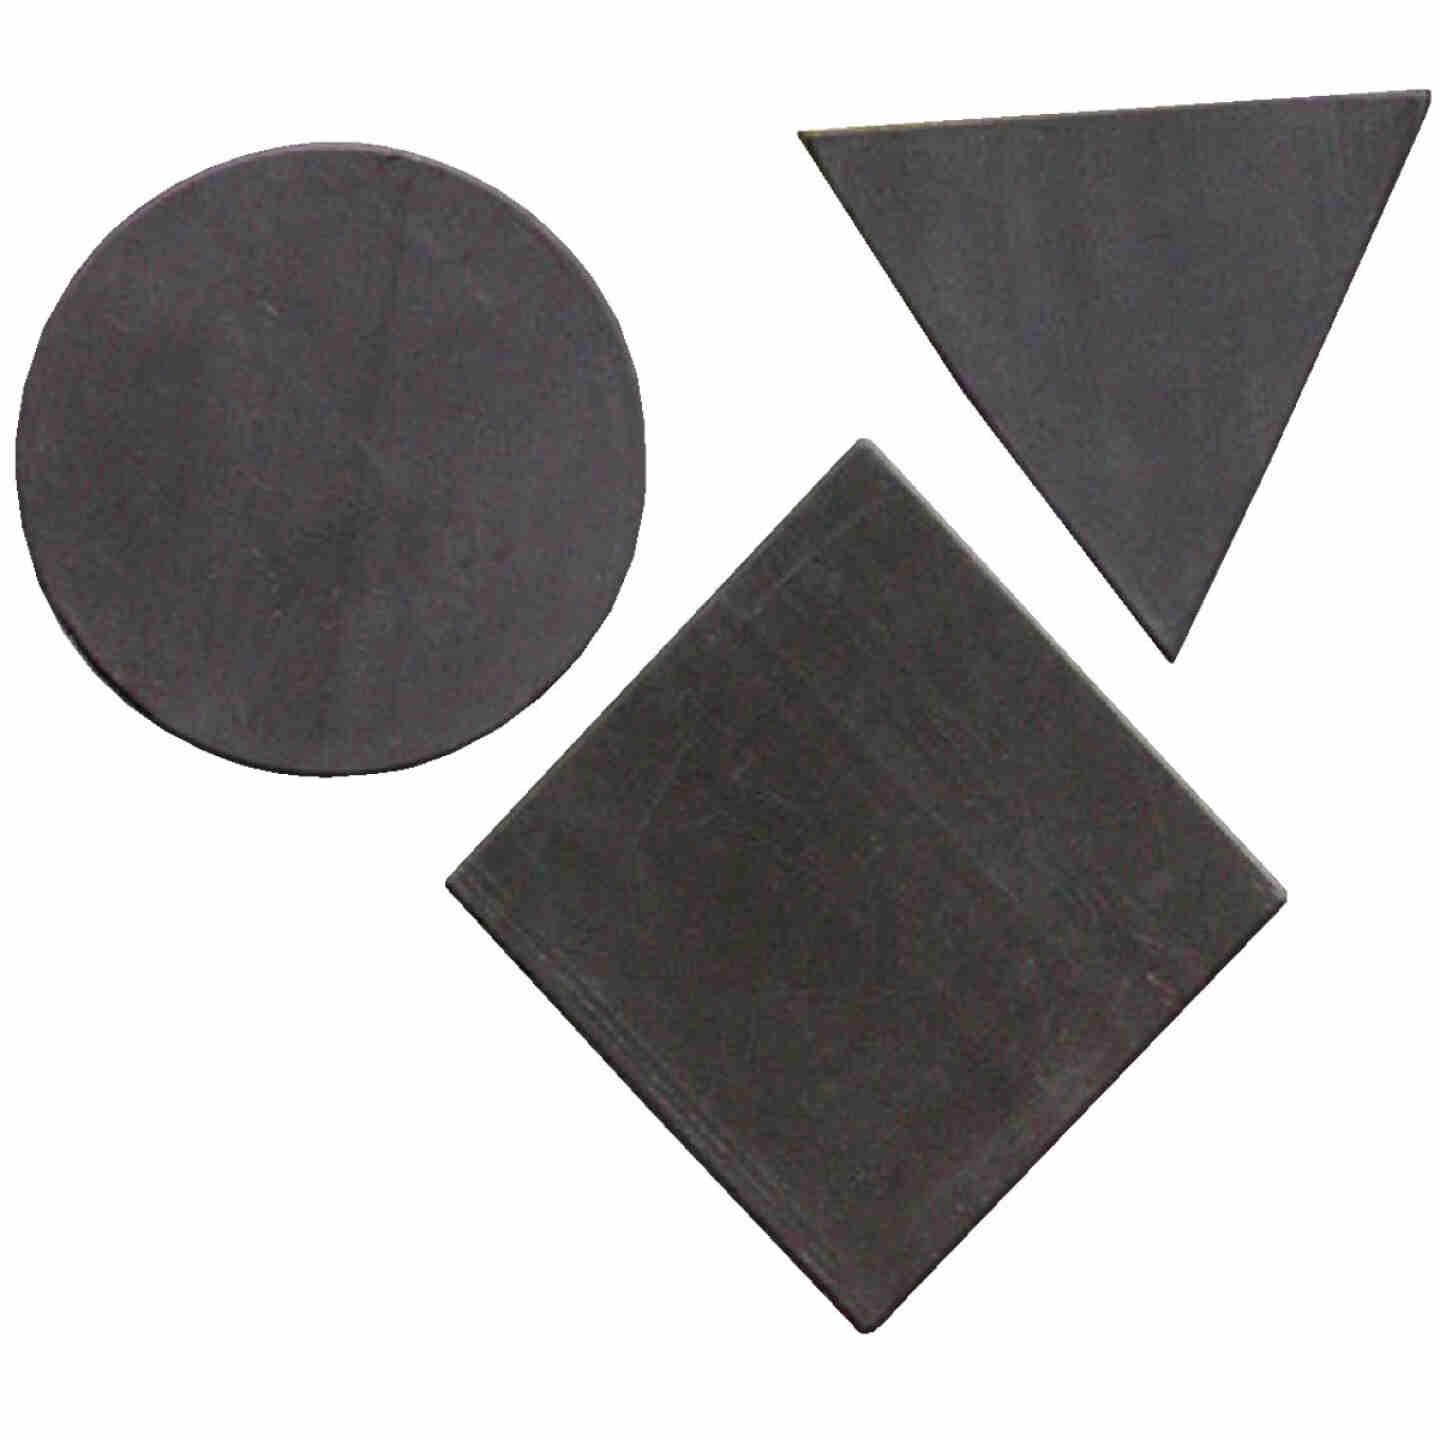 Master Magnetics Black Assorted Magnetic Shapes (30-Pack) Image 1